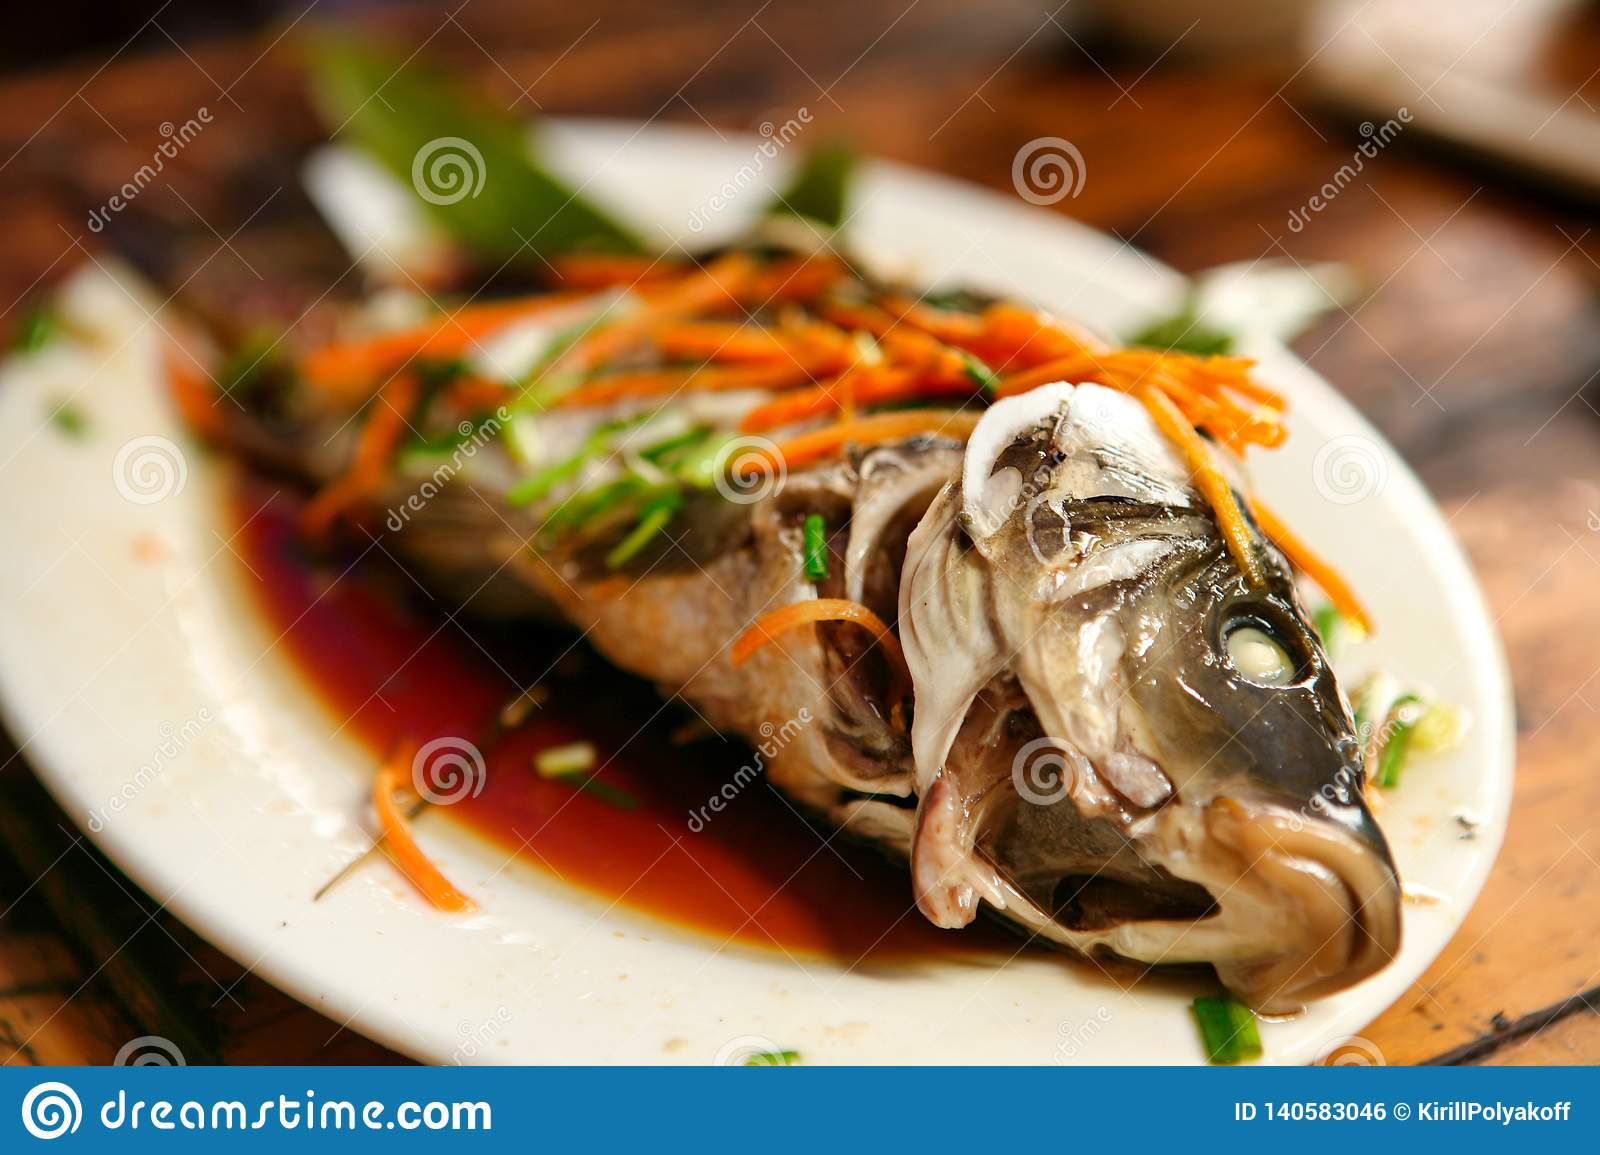 The traditional Chinese dishes of the village are Dazhay steamed fish with soy sauce and vegetables.